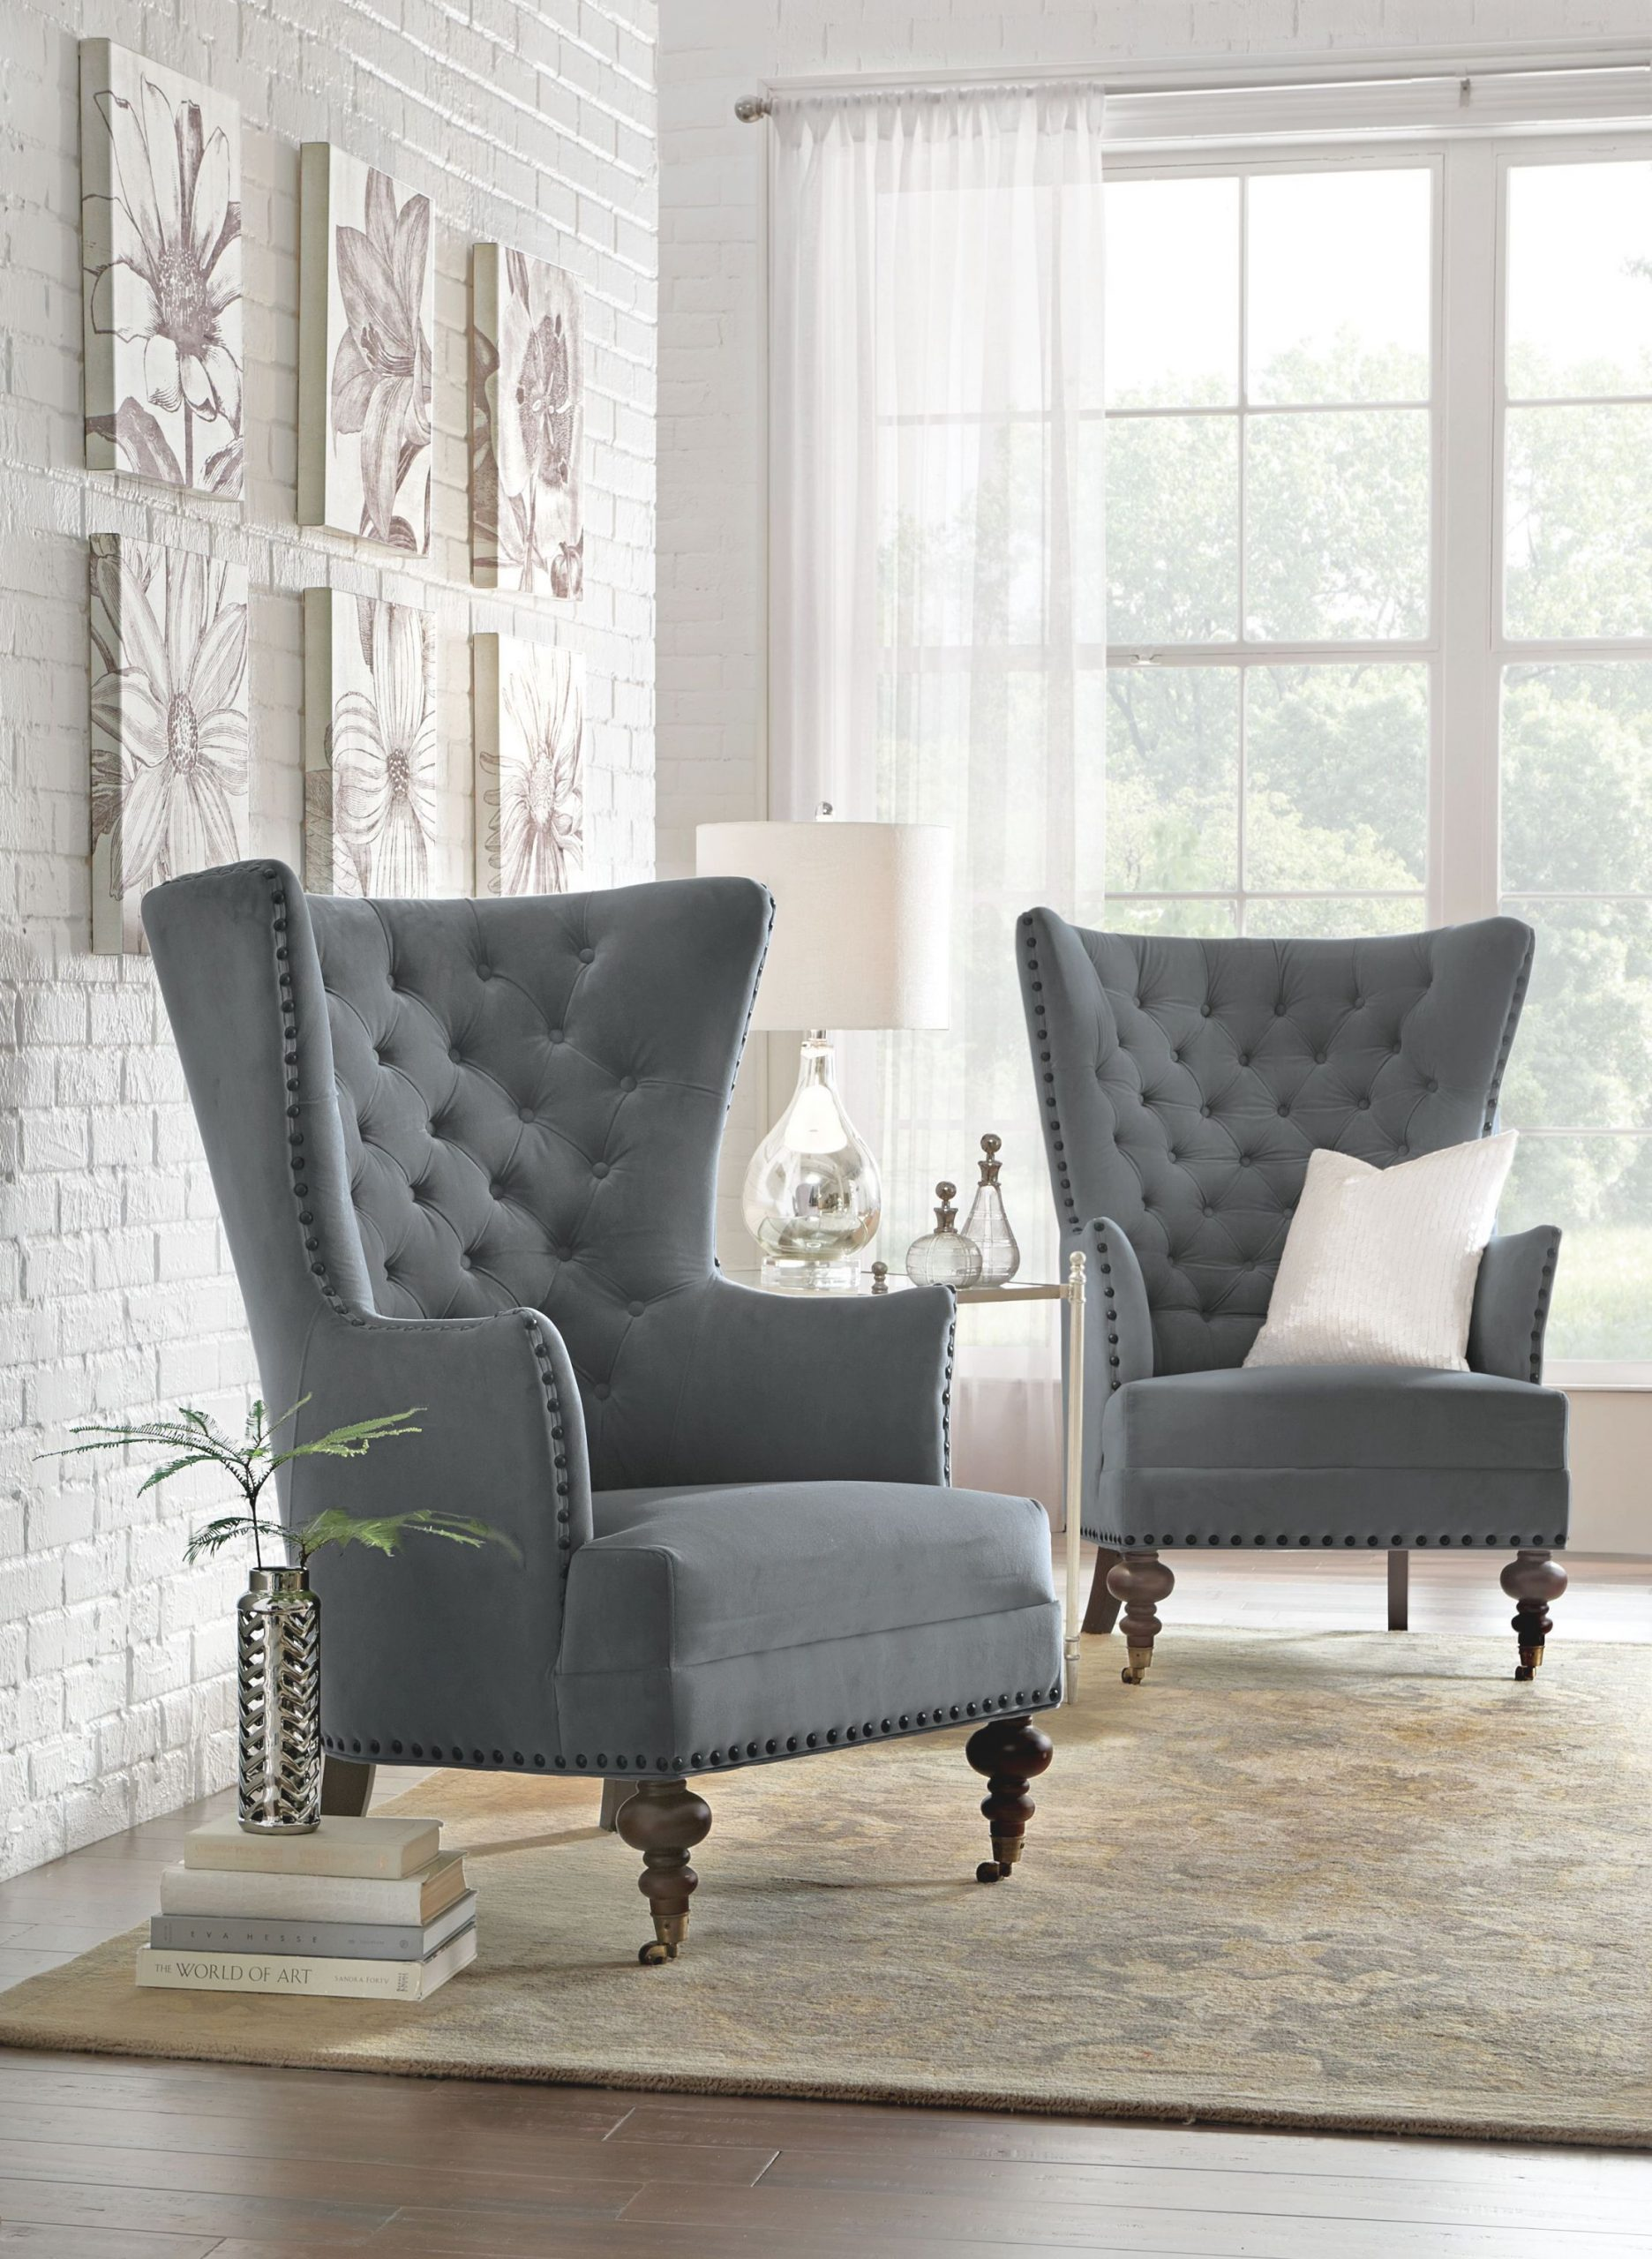 Uniquely Shaped Chairs Are A Perfect Home Accent pertaining to Chairs For Living Room Cheap